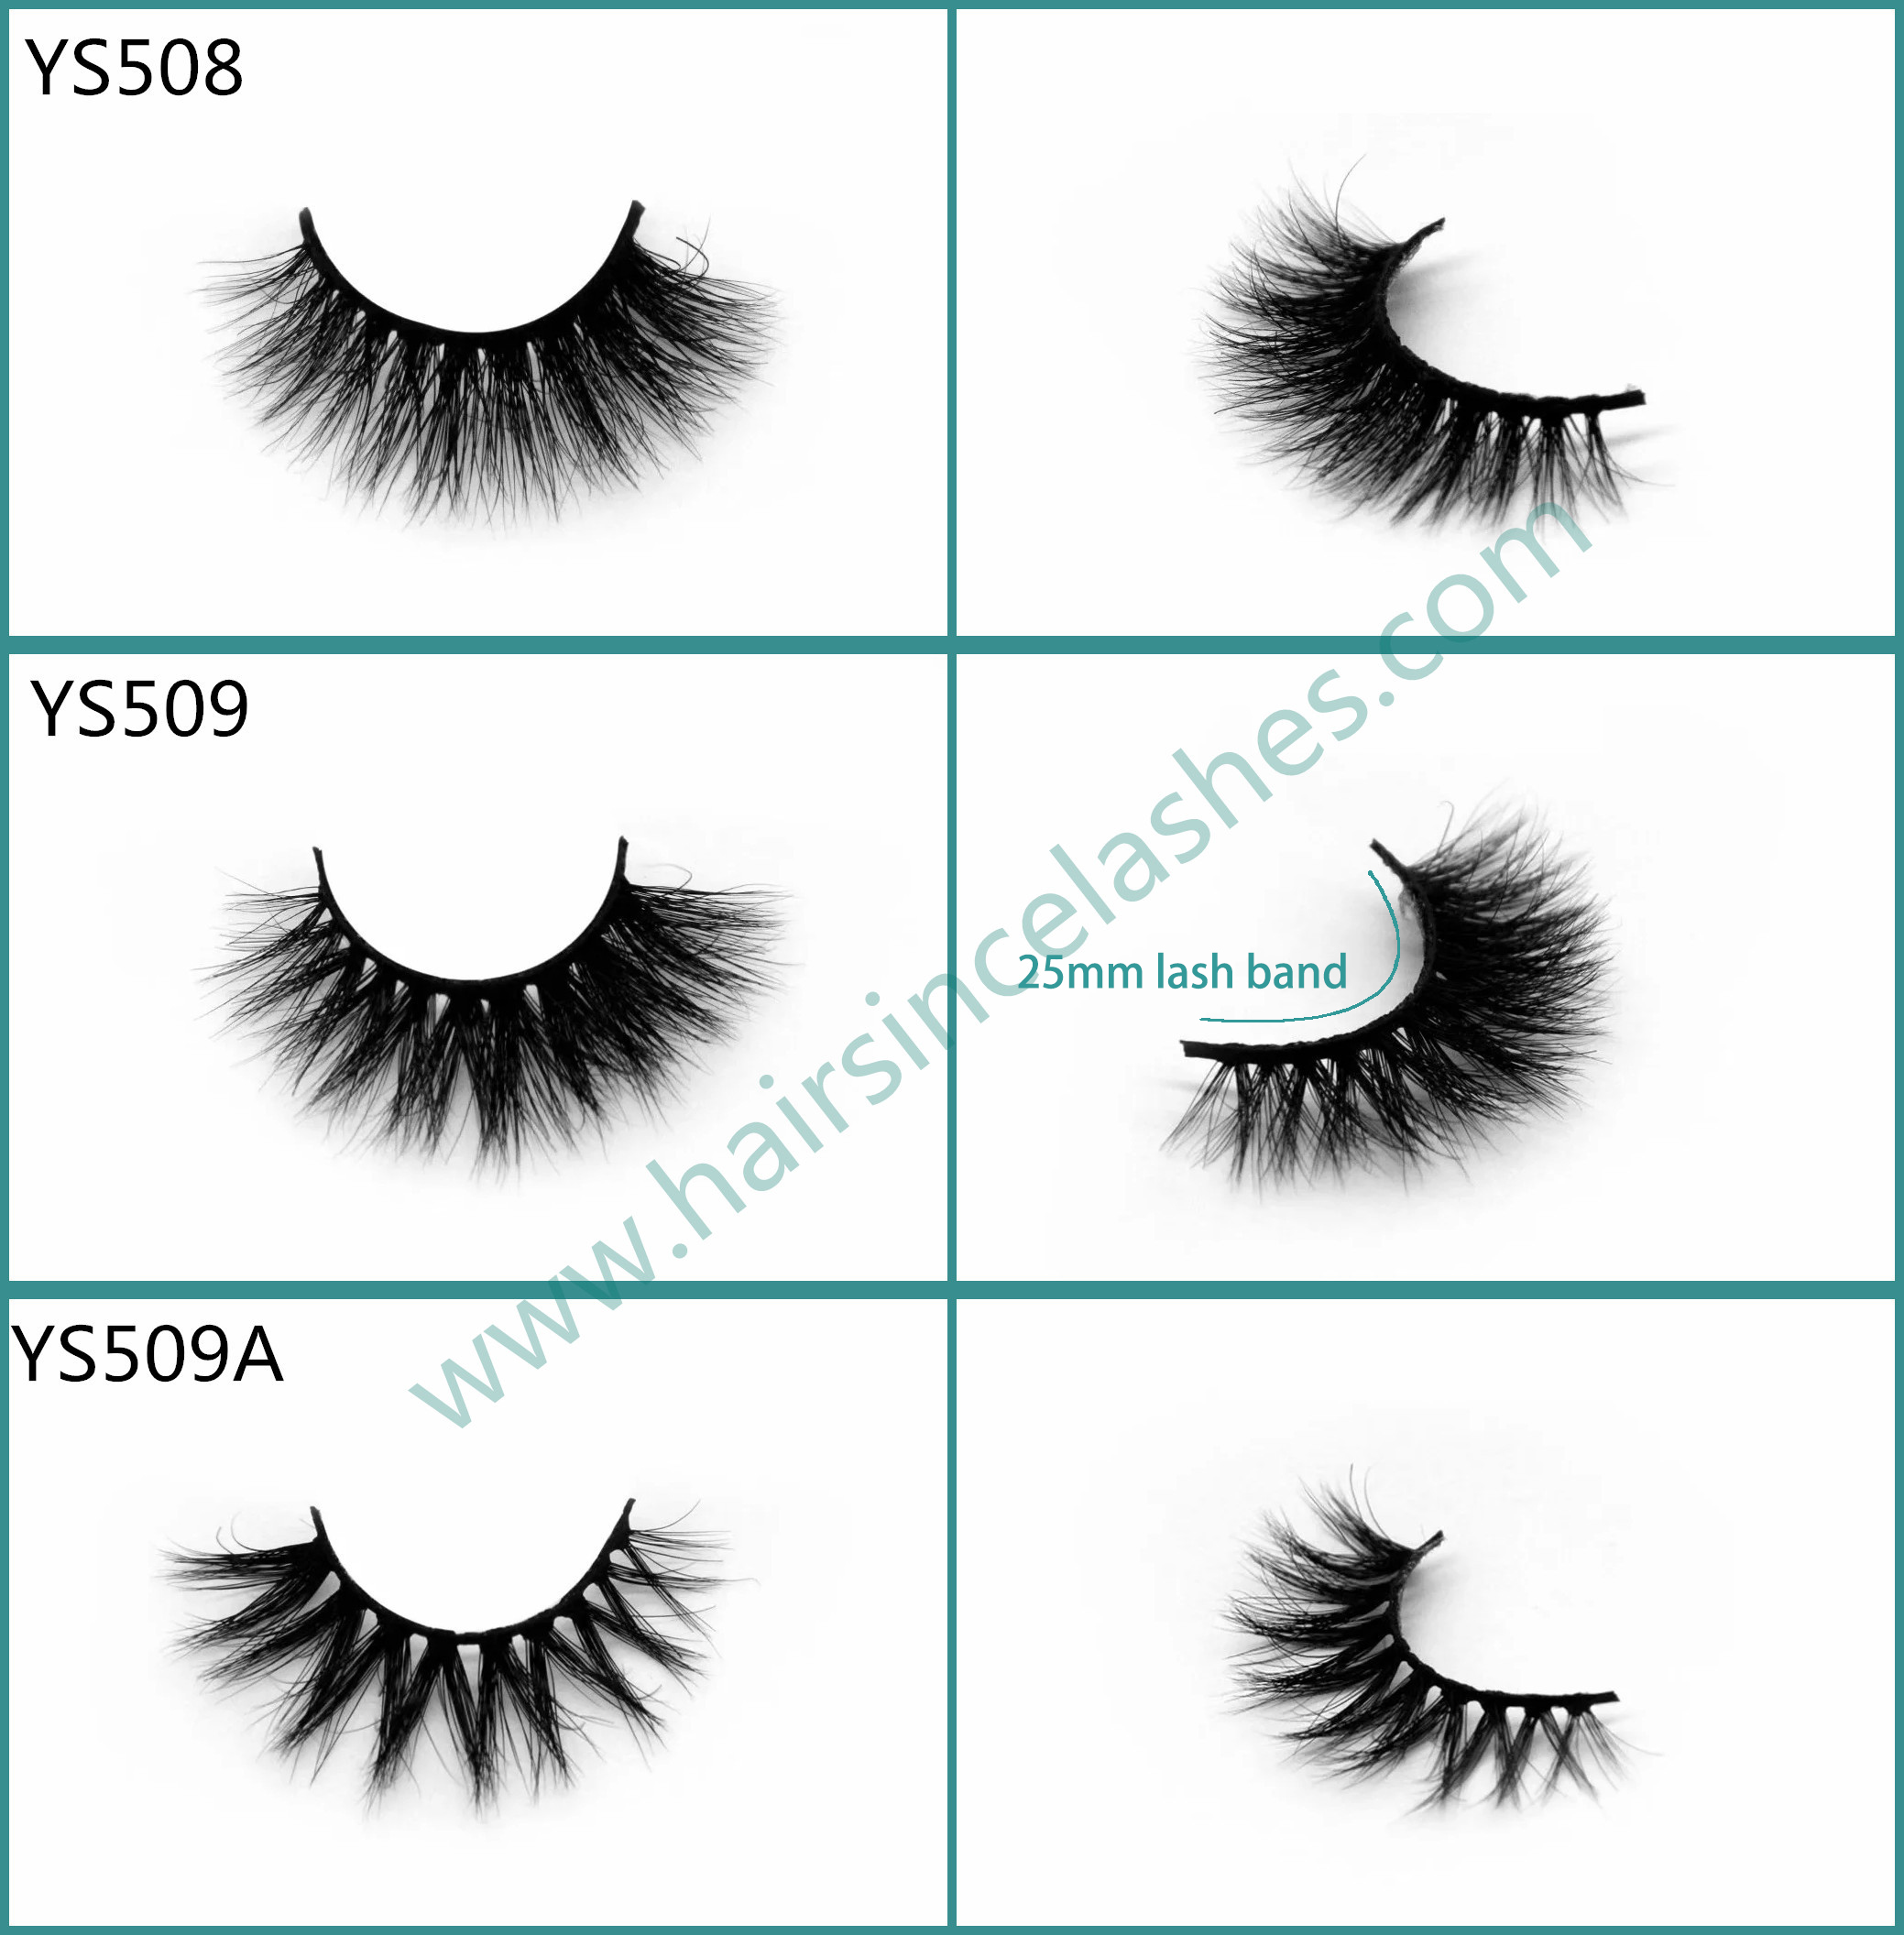 Good quality from Hairsince factory 3D mink hair lashes 25mm short lash band for small eyes